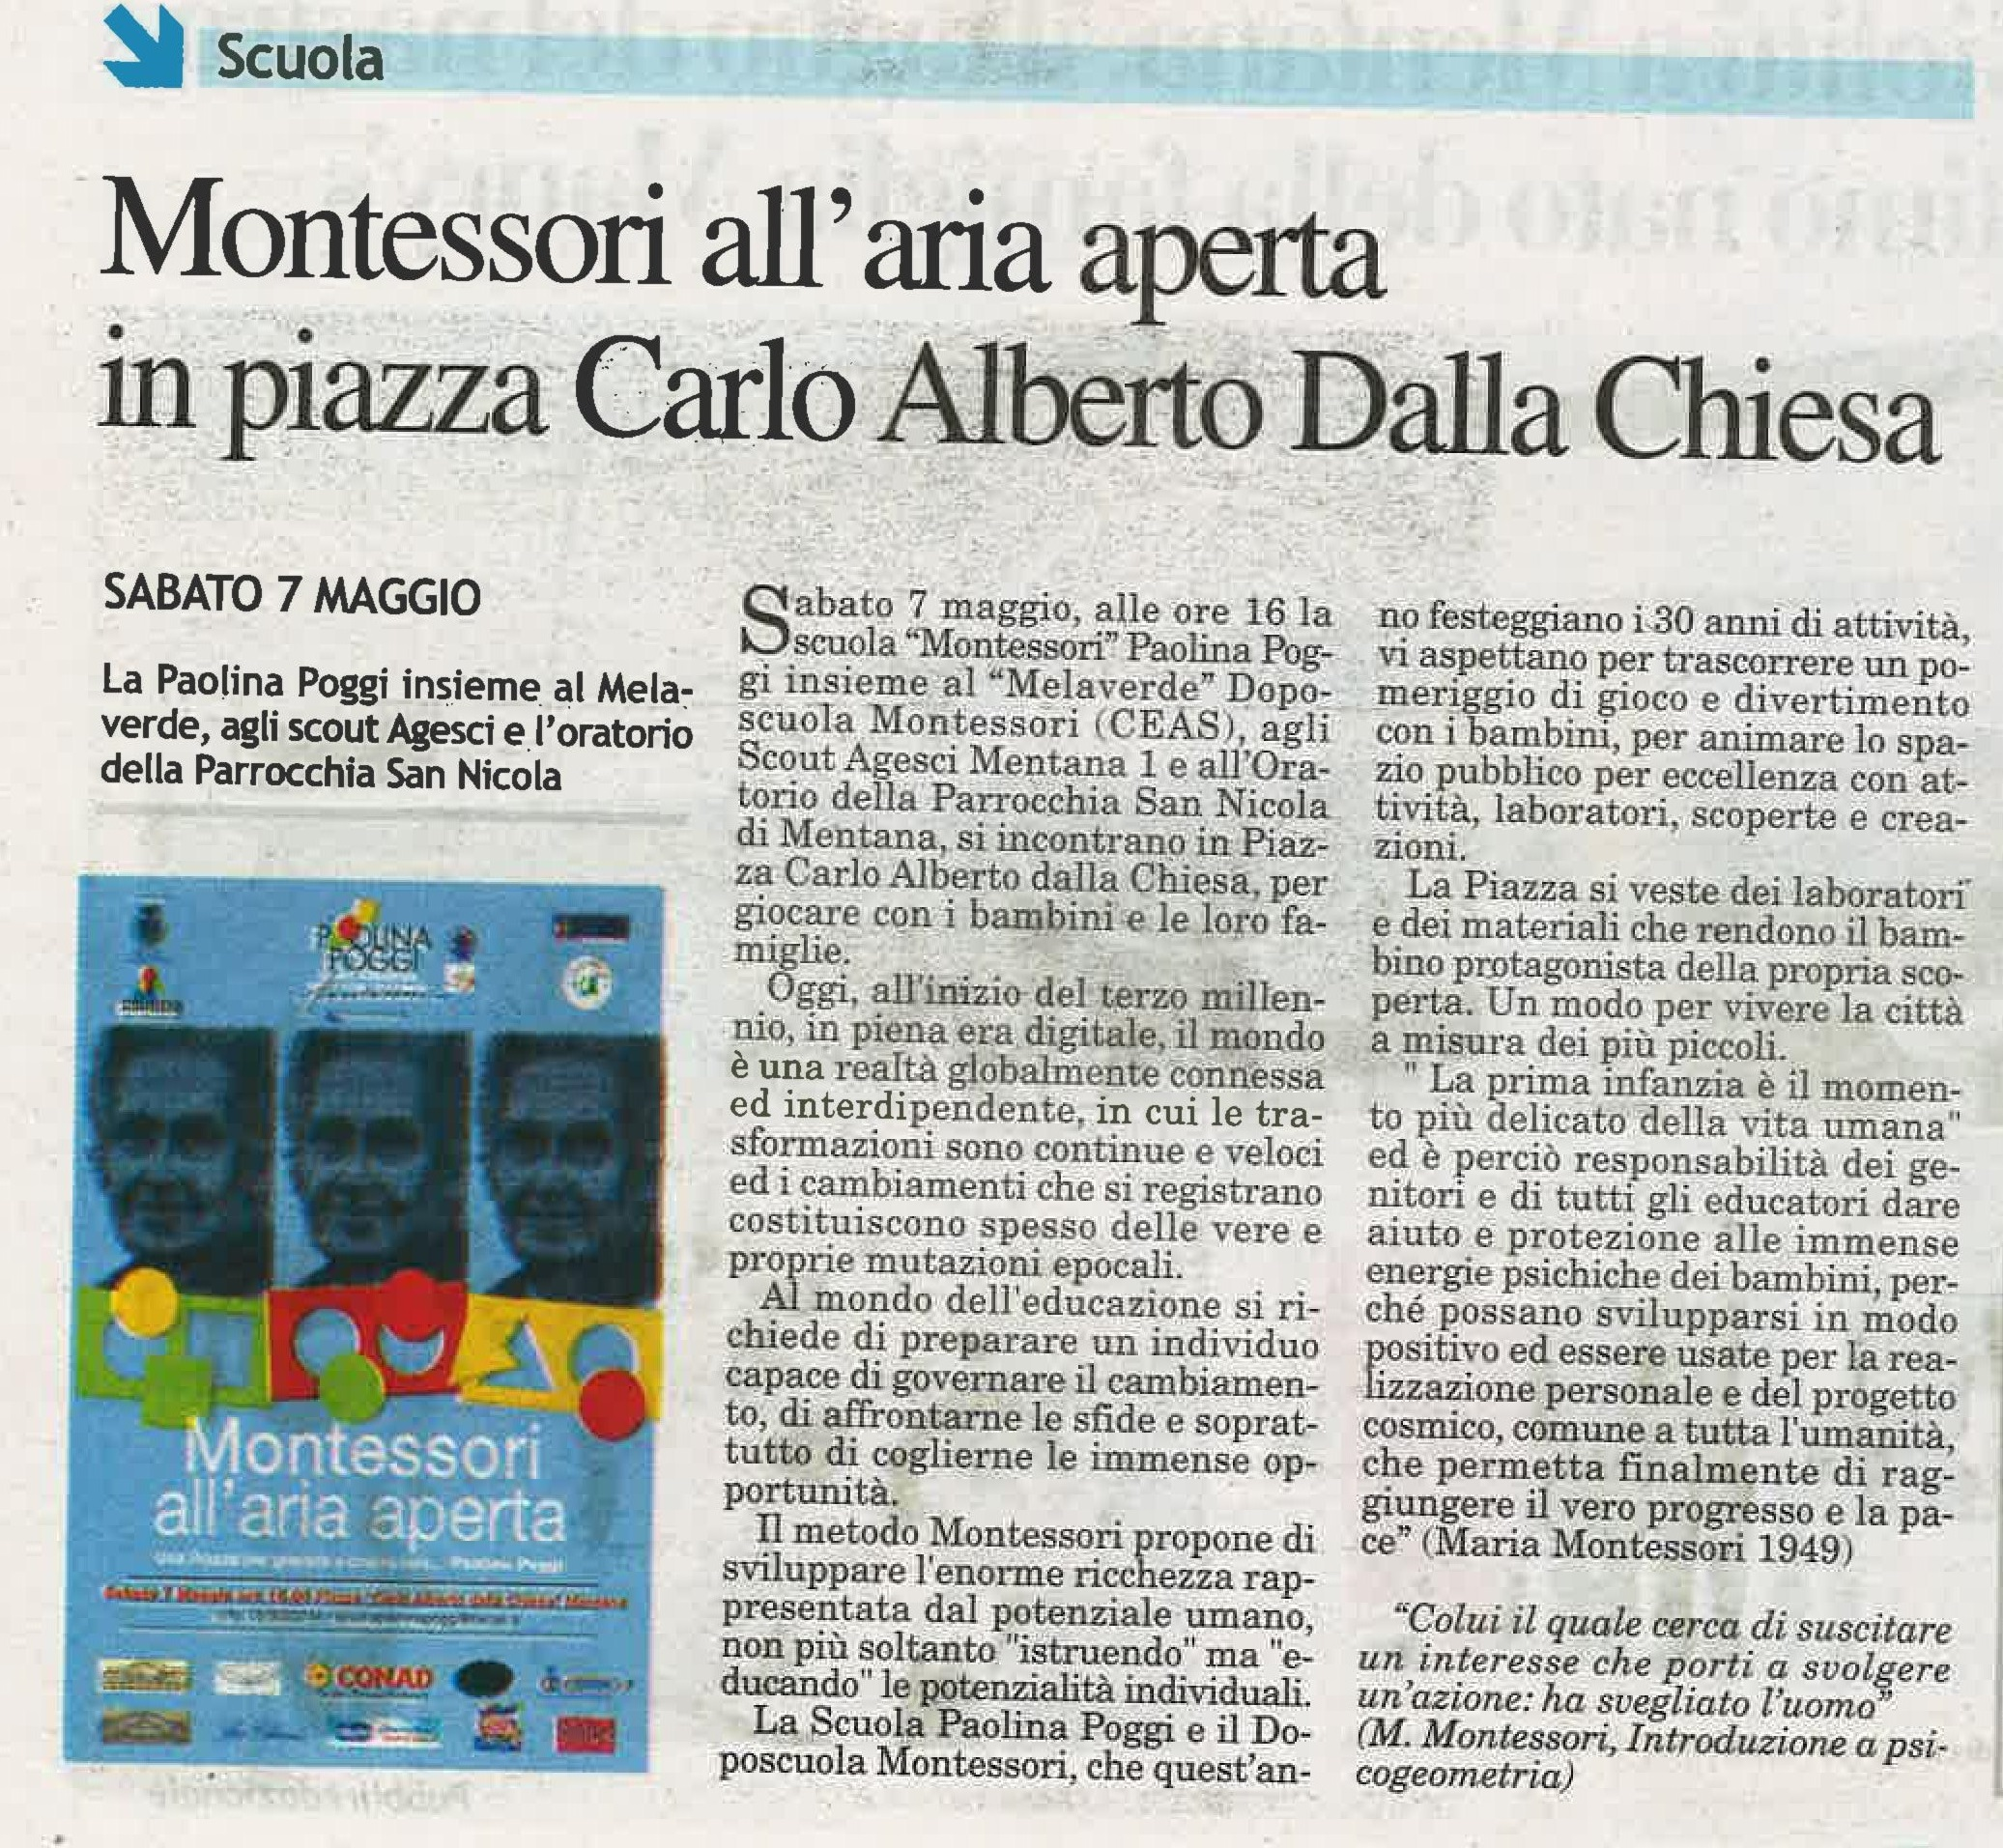 Montessori all'aria aperta tiburno